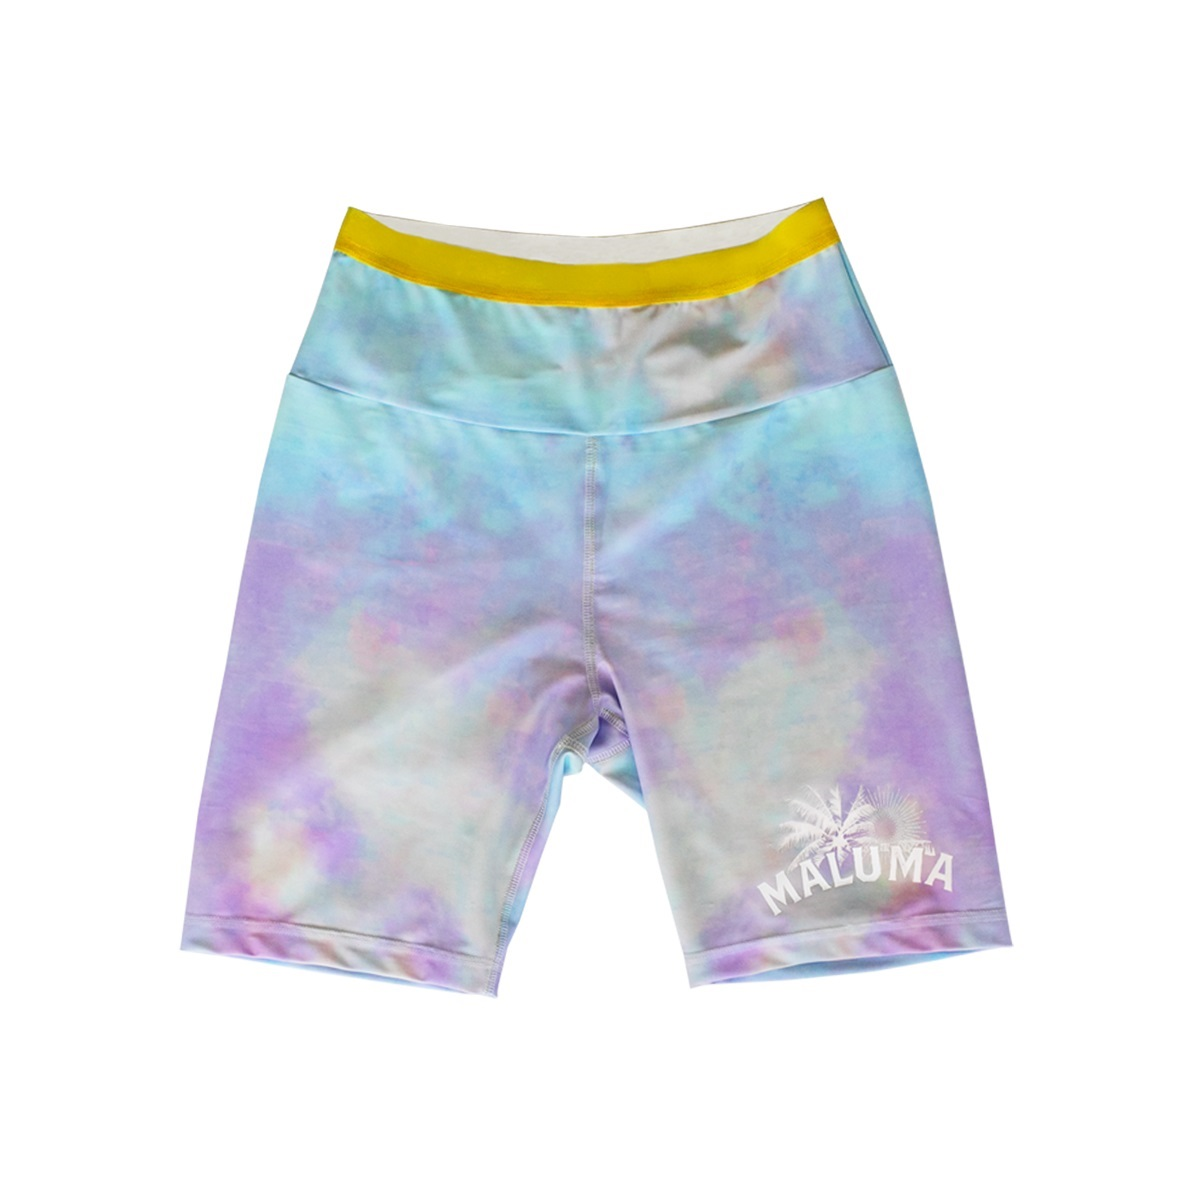 Dyed Golden Hour Biker Shorts